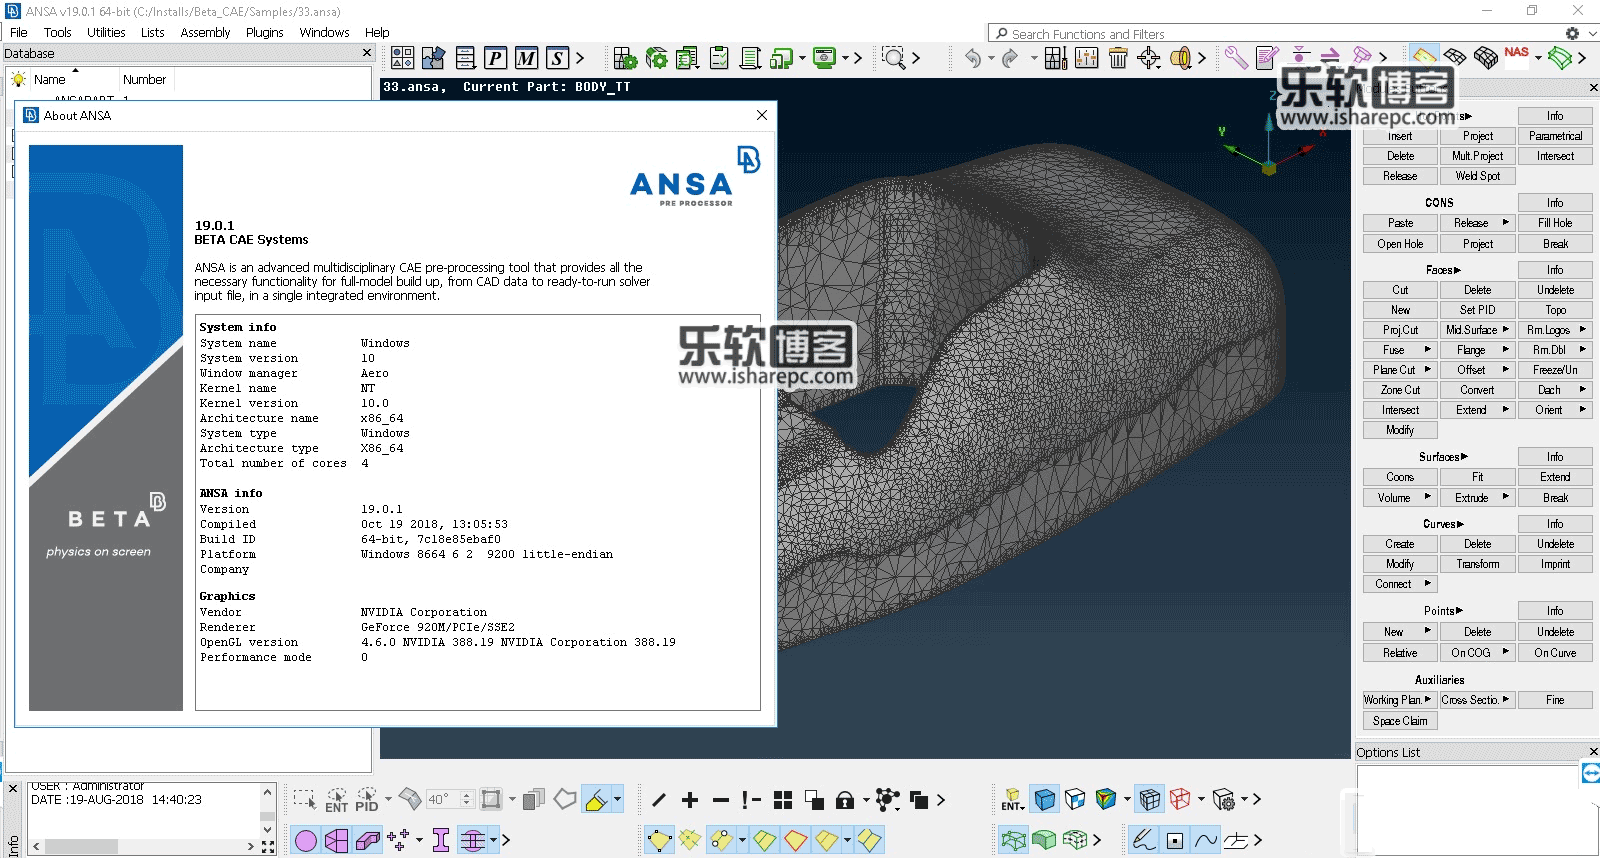 BETA CAE Systems 19.0.1破解版